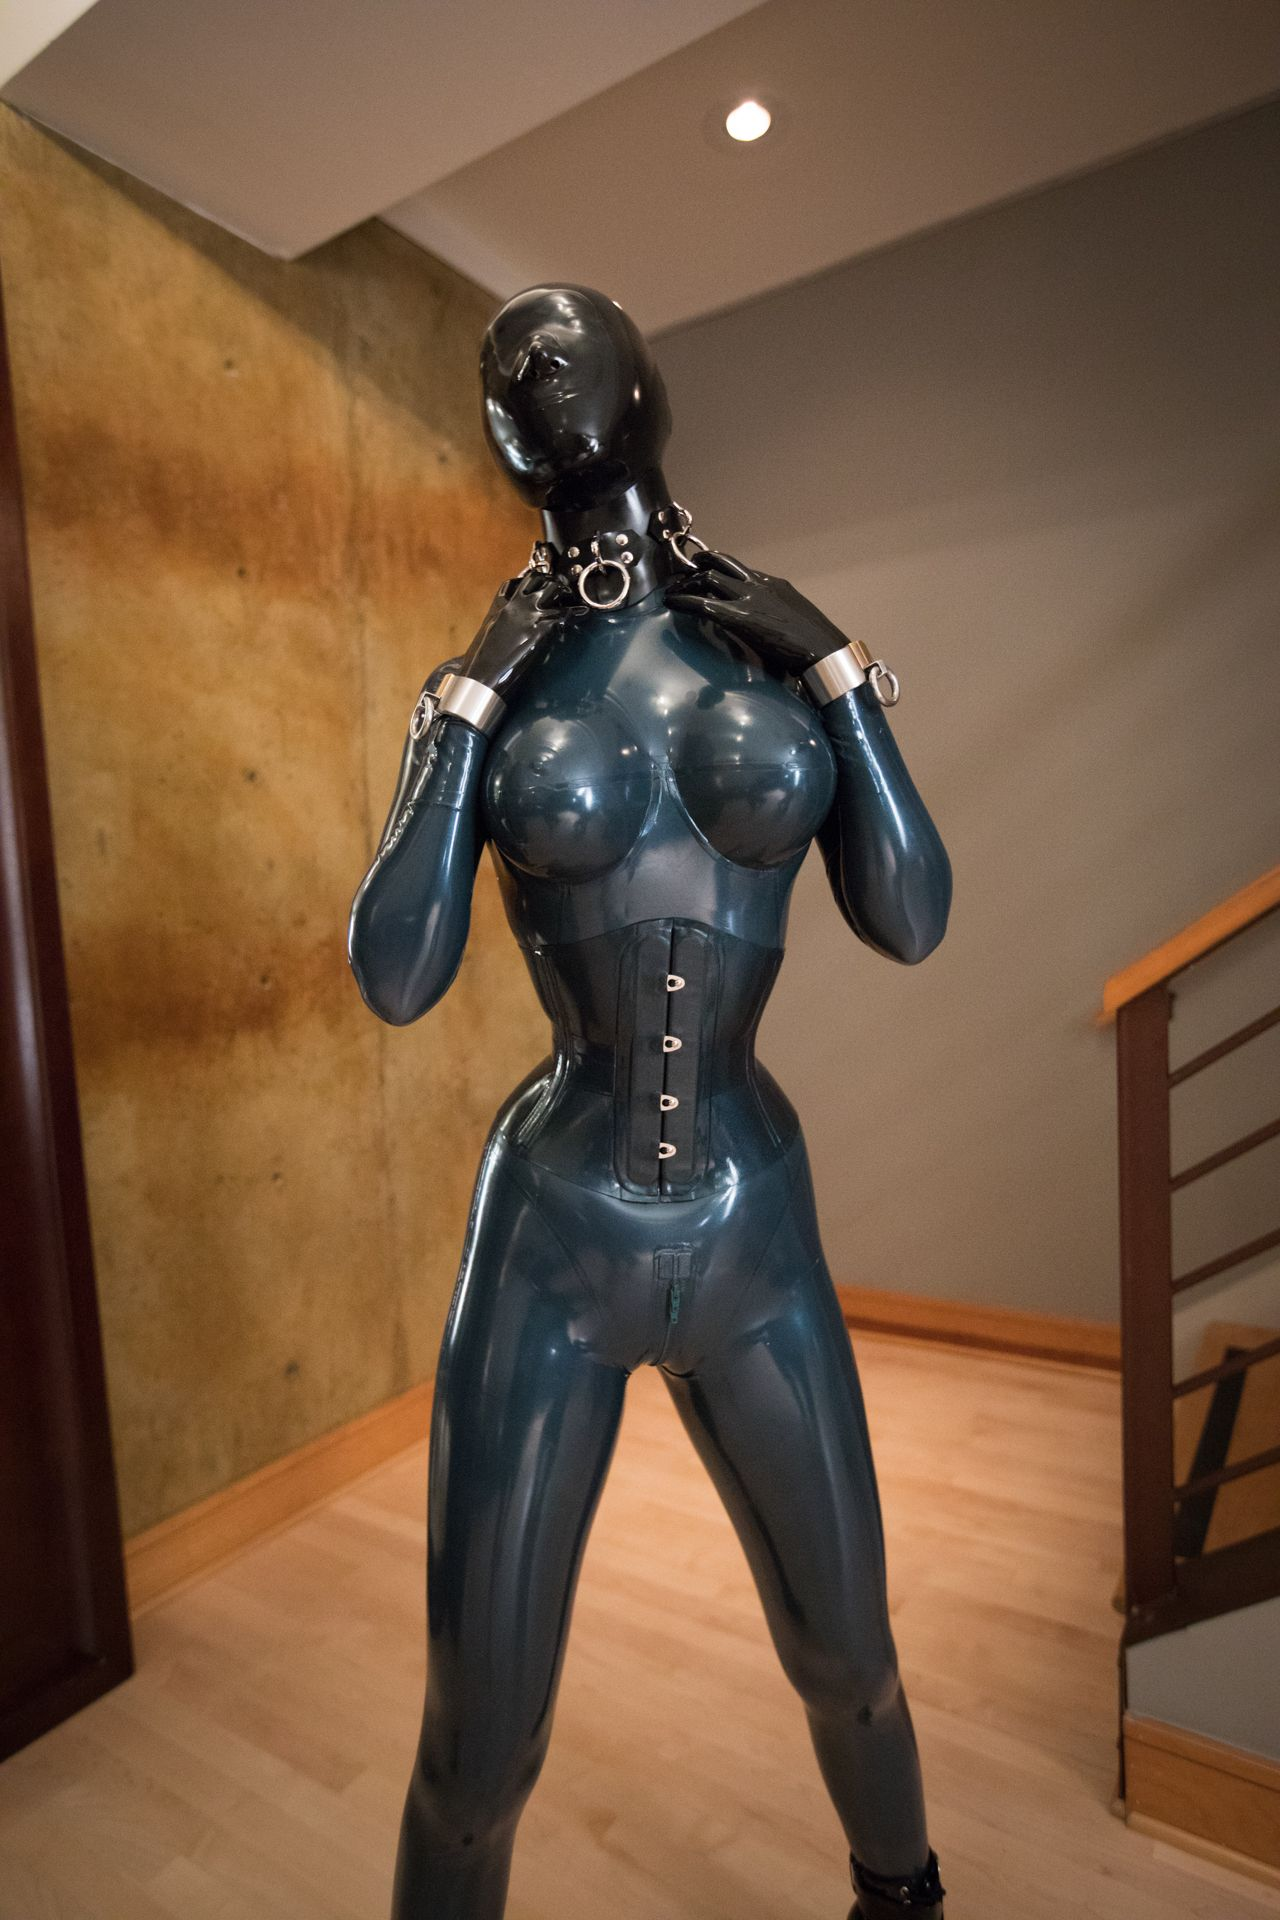 Rubber fetish latexfetish men interesting question